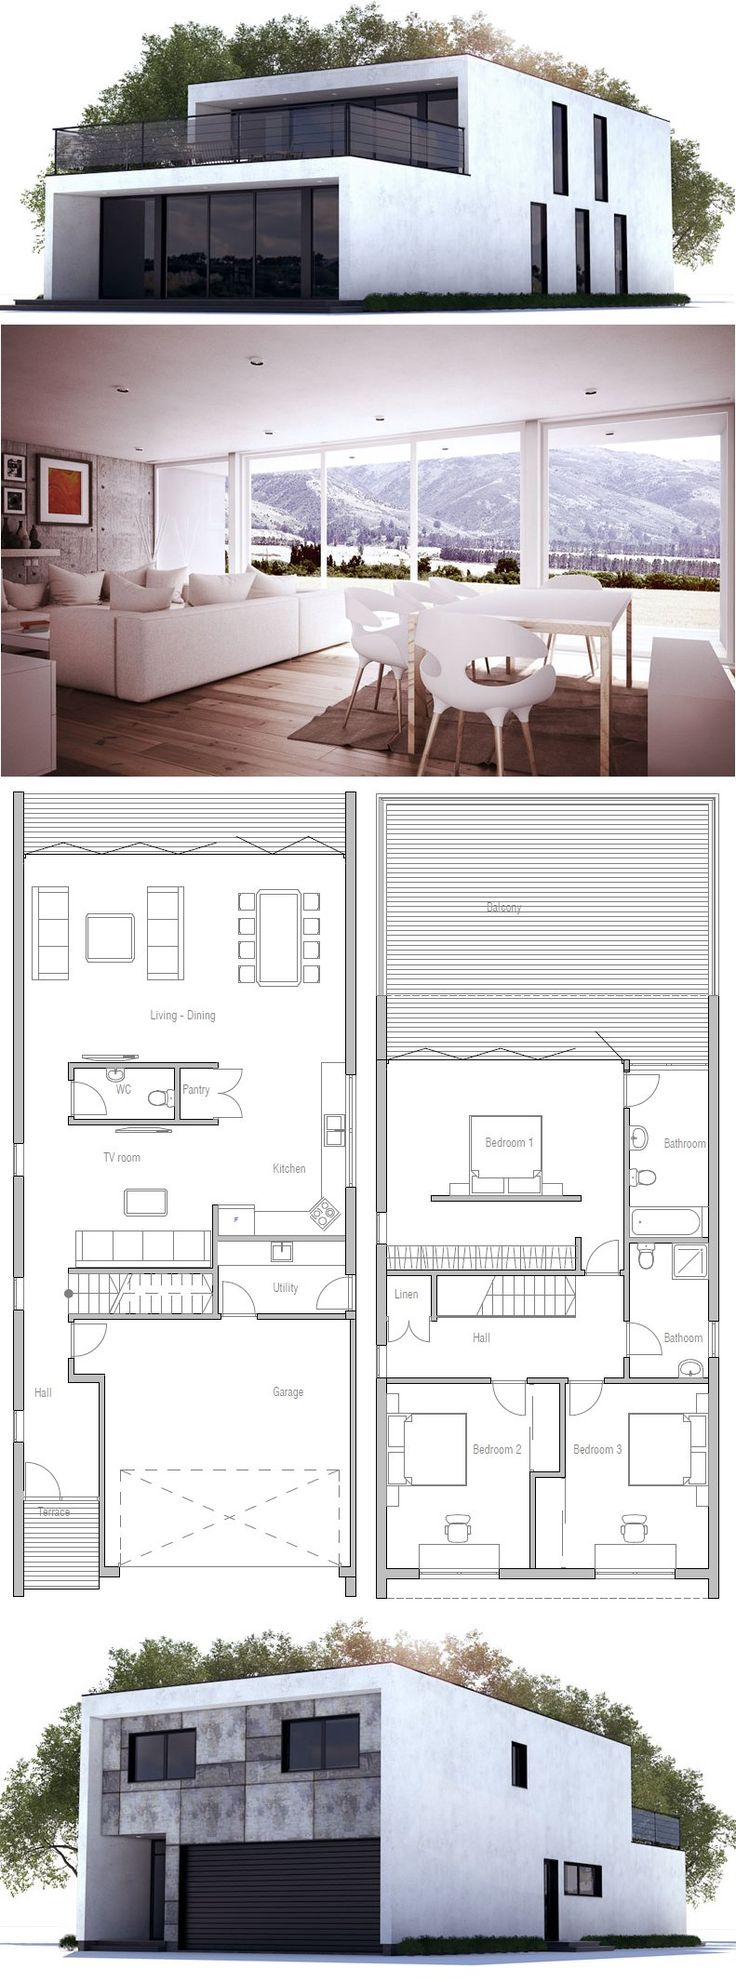 Modern Contemporary Home with three bedrooms and double garage. Floor Plan from ConceptHome.com